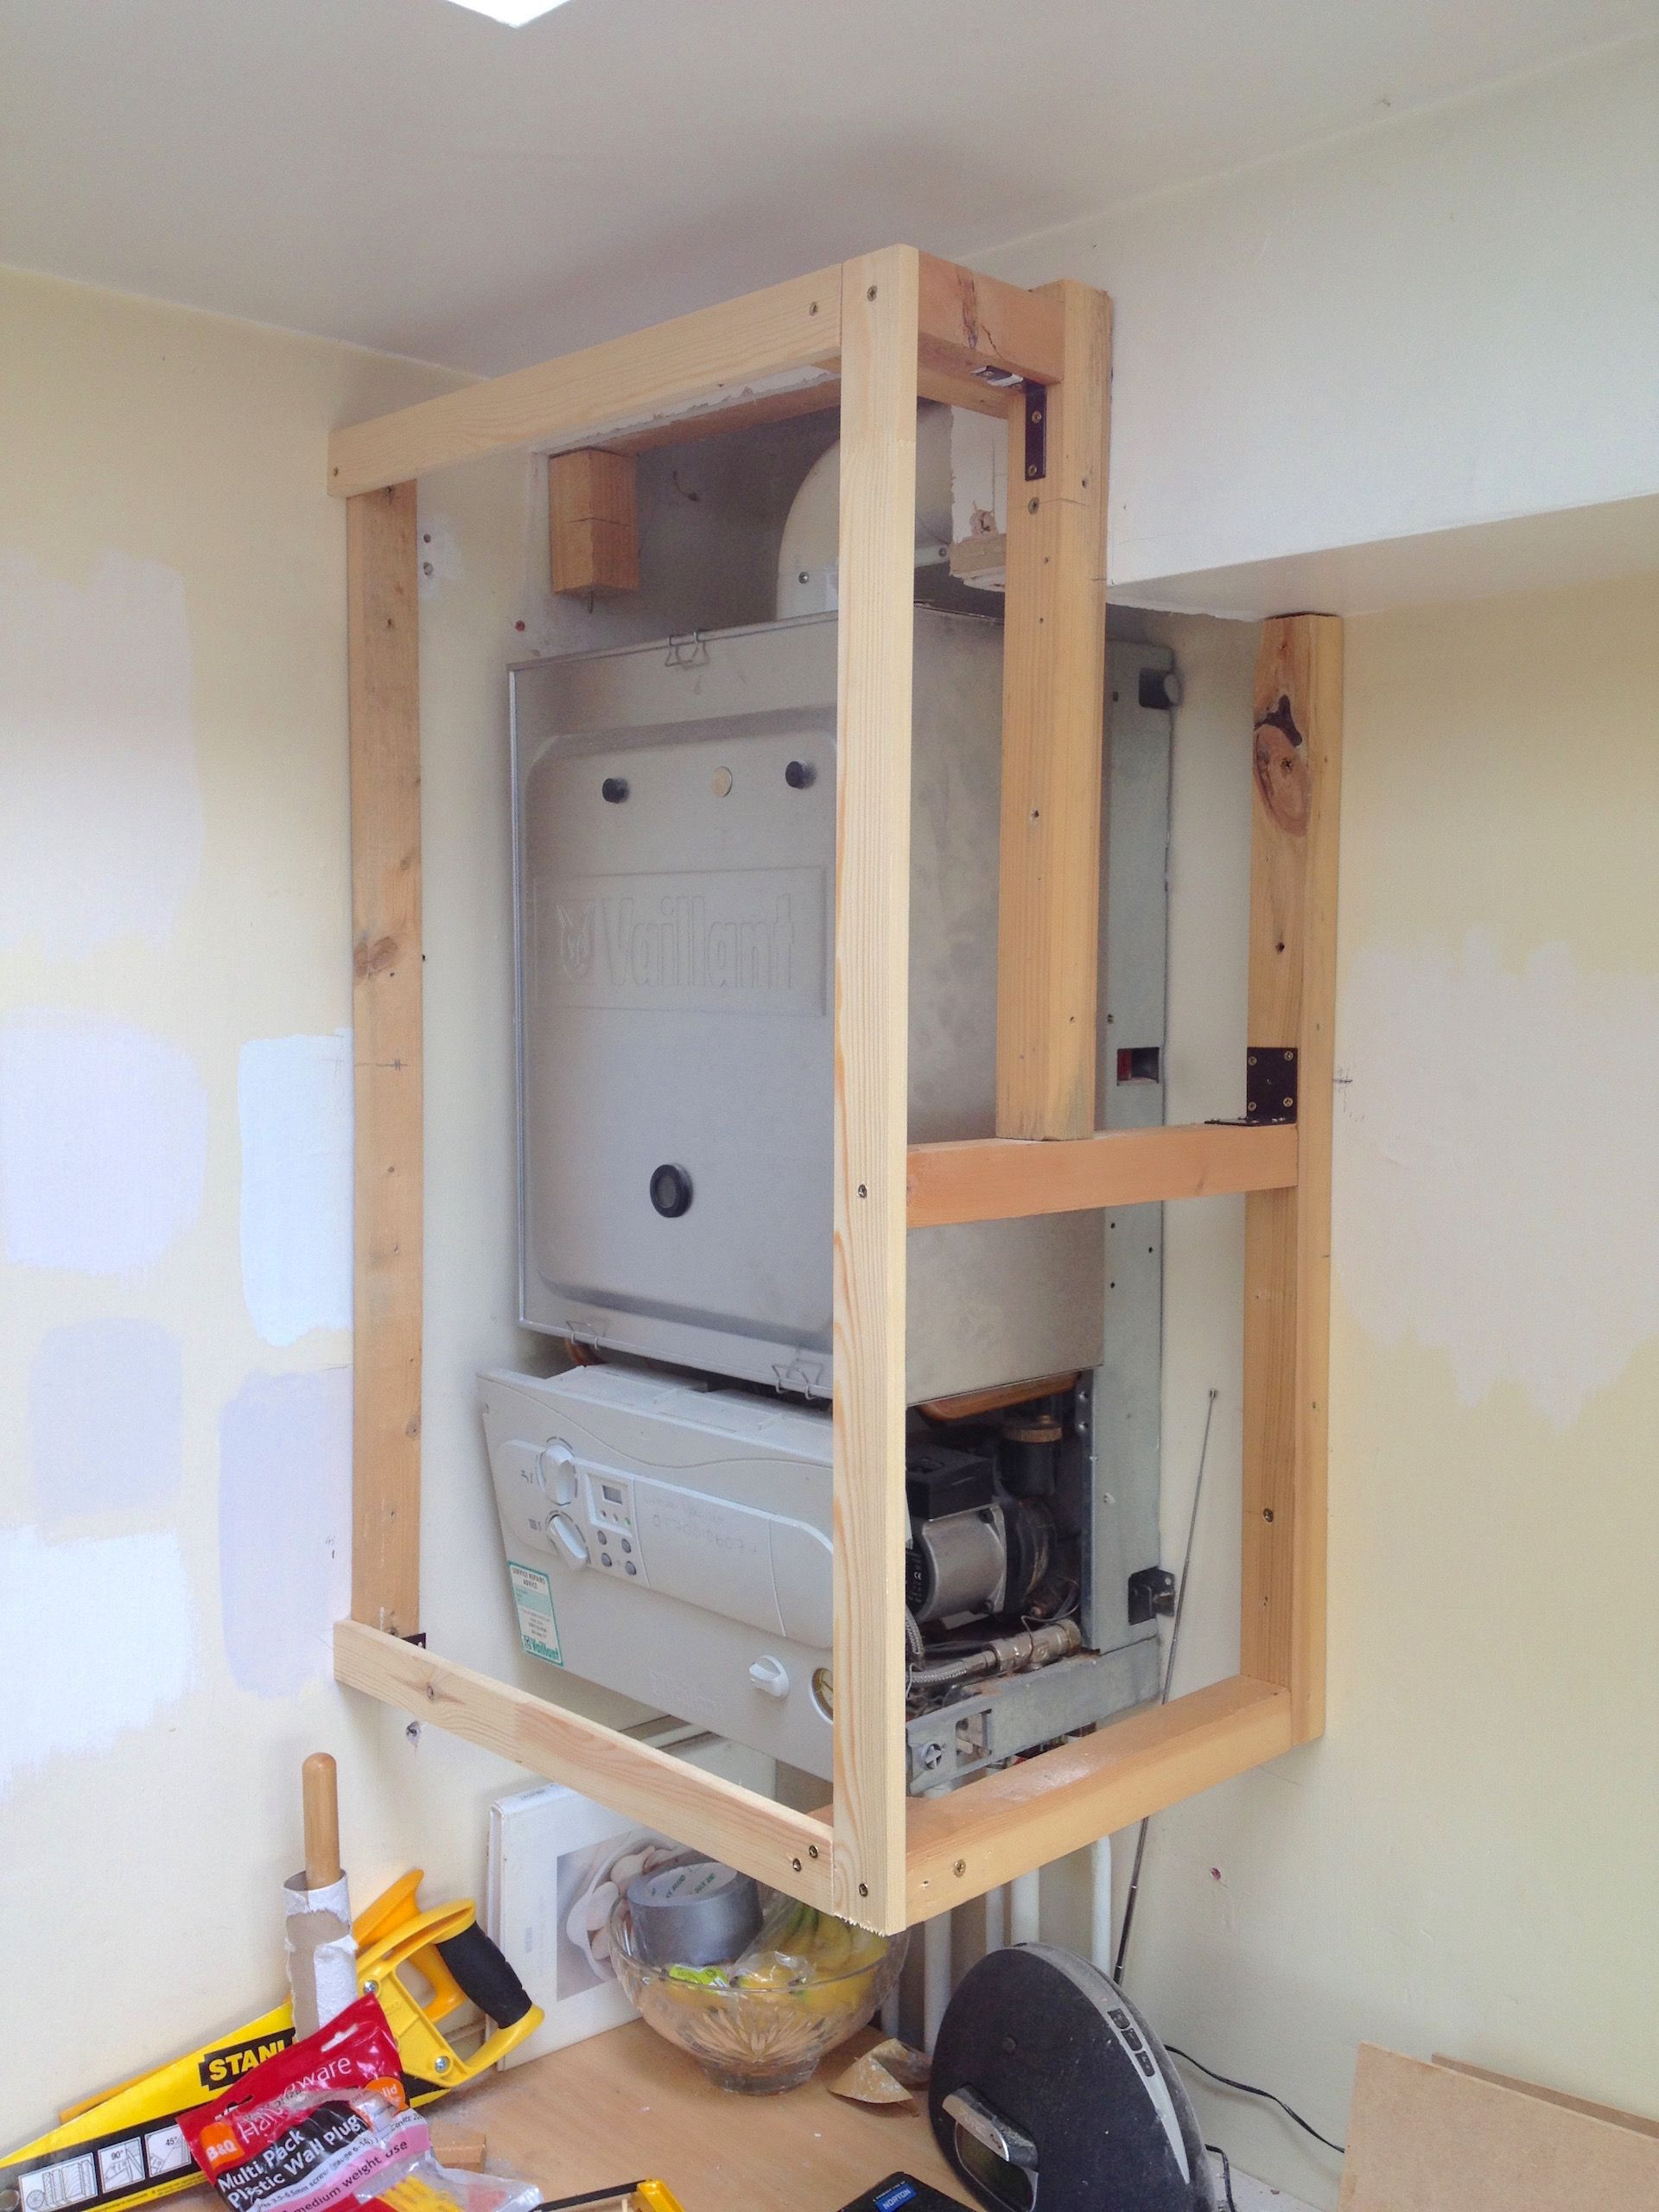 Boiler Badezimmer How To Make An Simple And Attractive Diy Boiler Cover